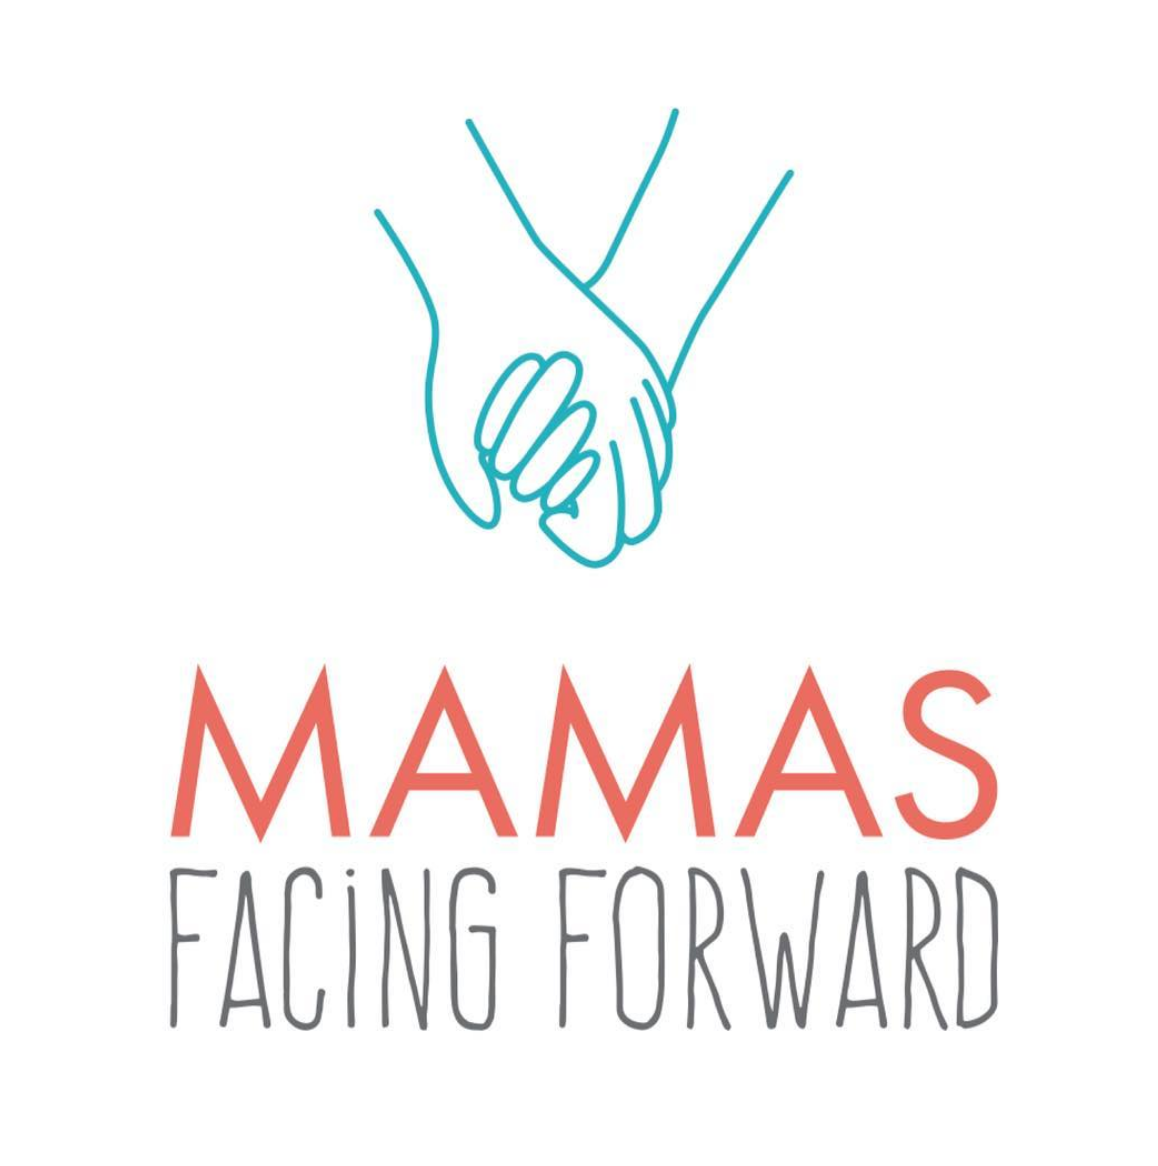 Mamas Facing Forward